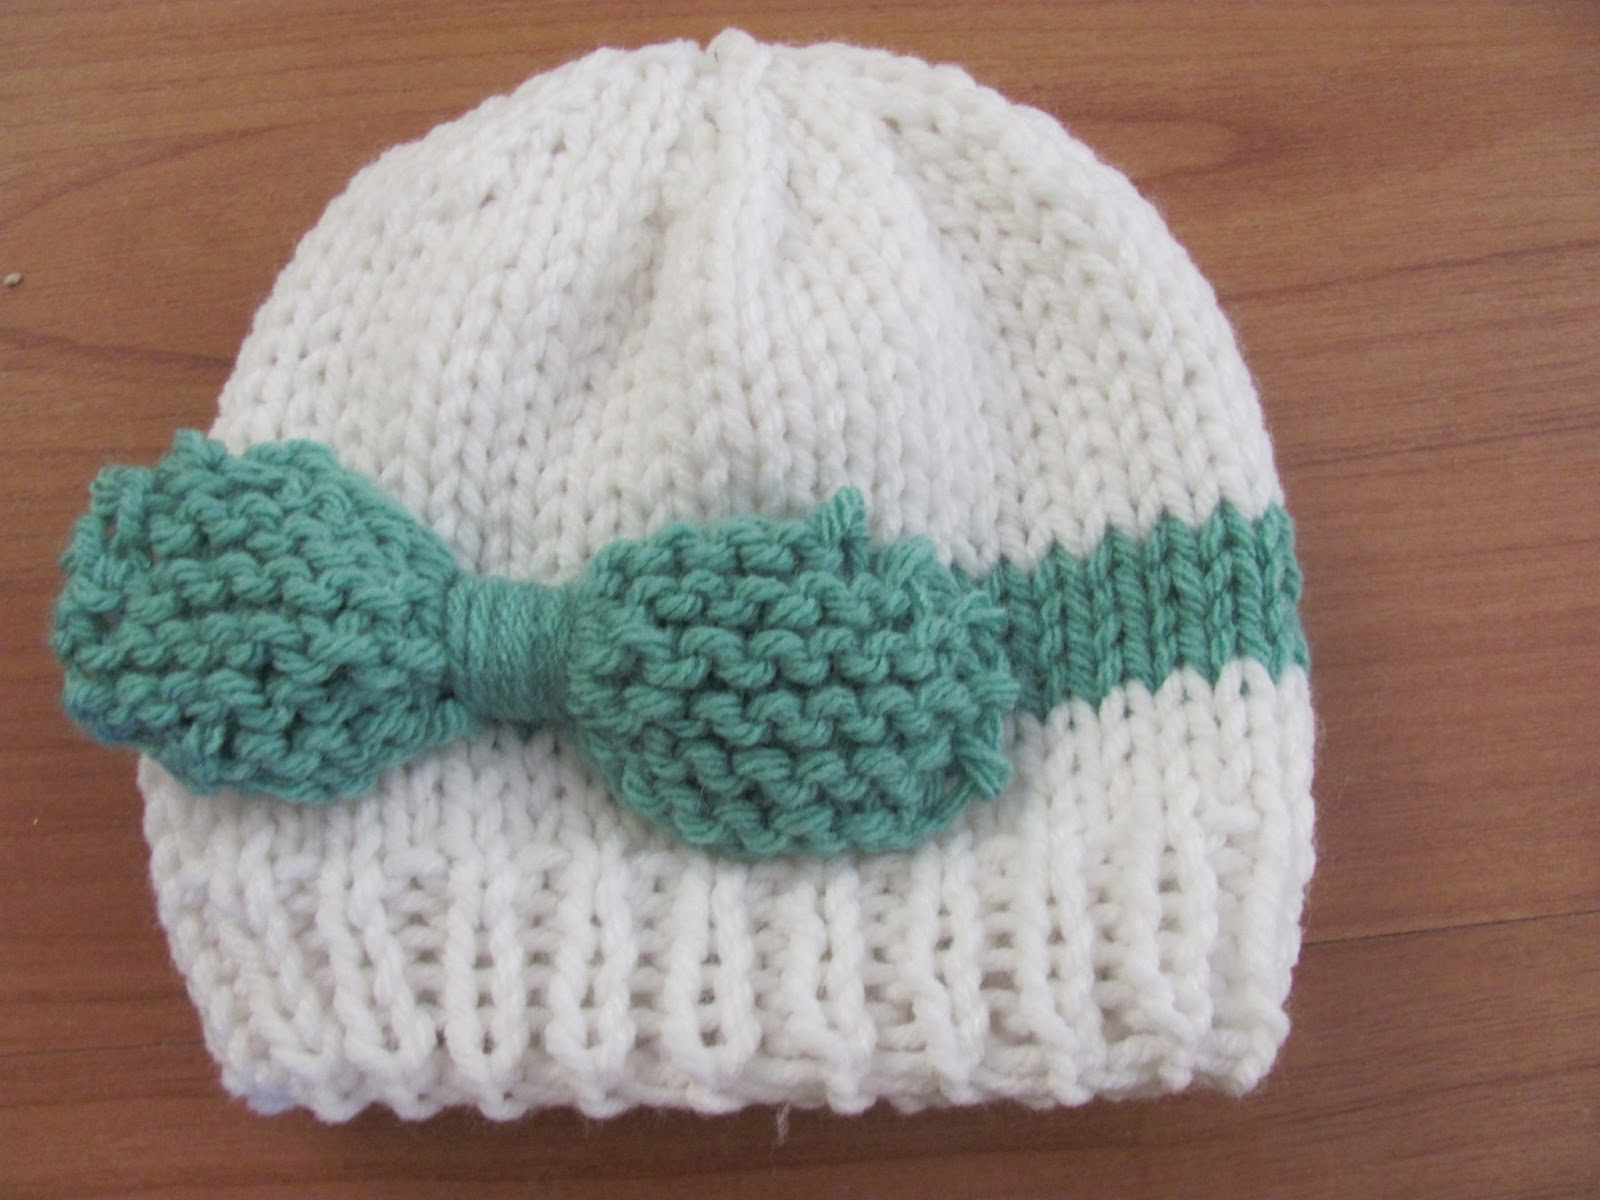 Easy Knitting Patterns For Beginners Baby Hats : Twenty Something Granny: Knitted Baby Bow Hat